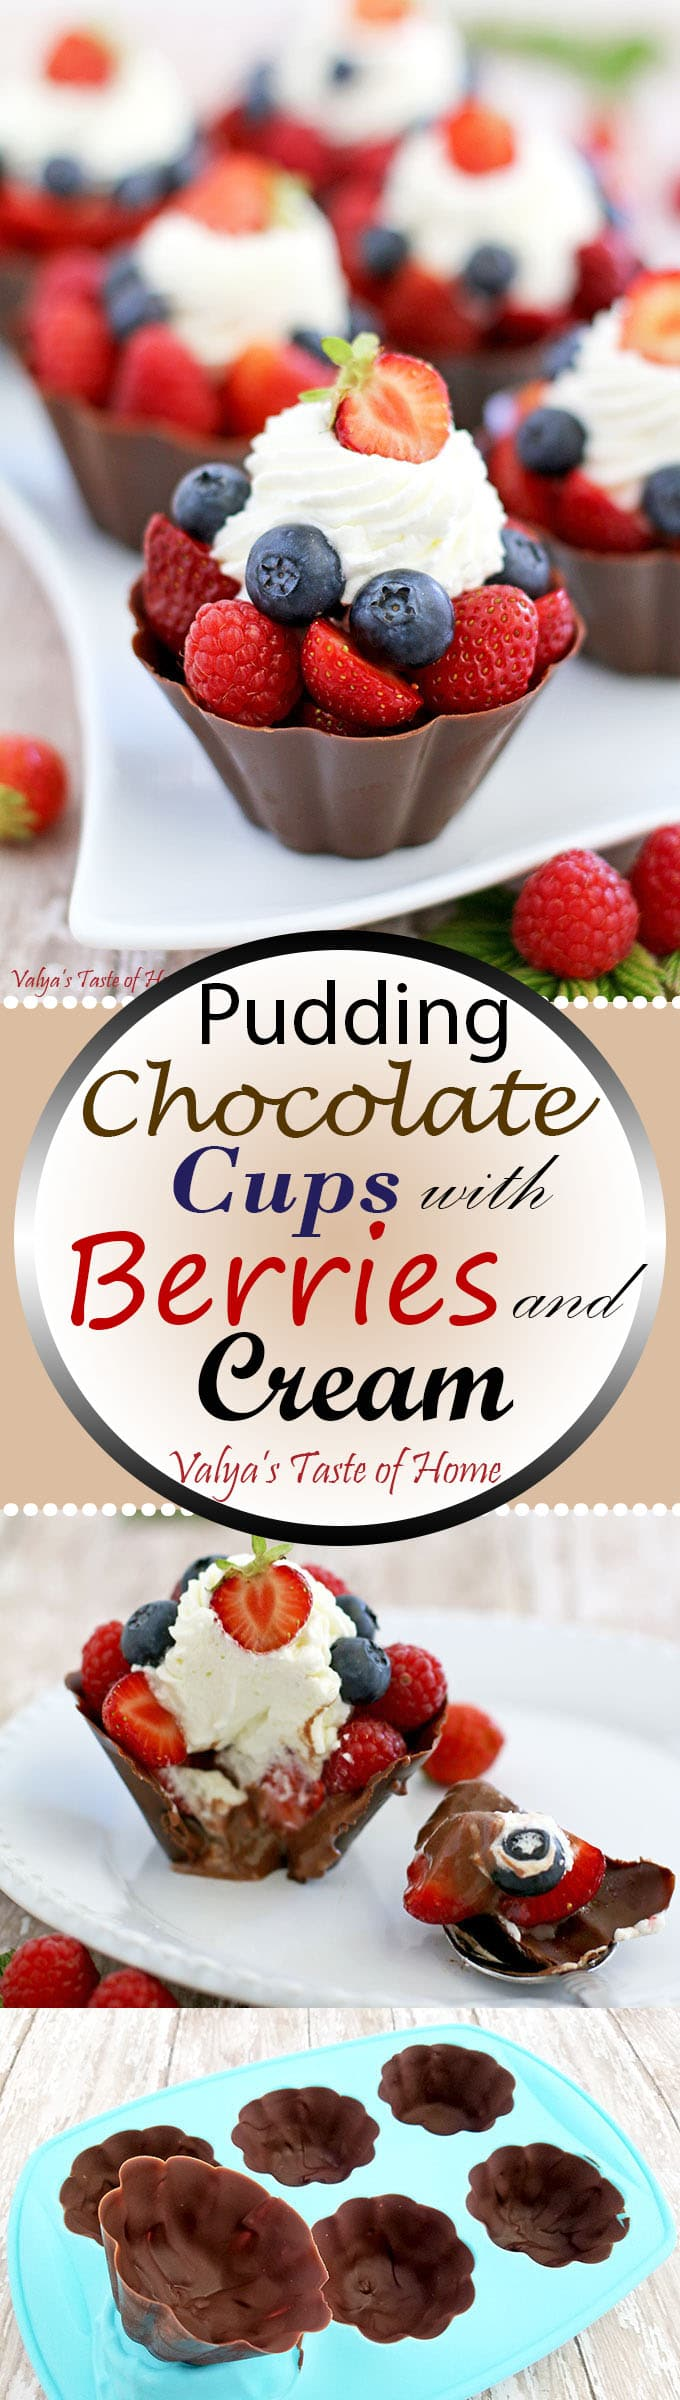 Pudding Chocolate Cups with Berries and Cream